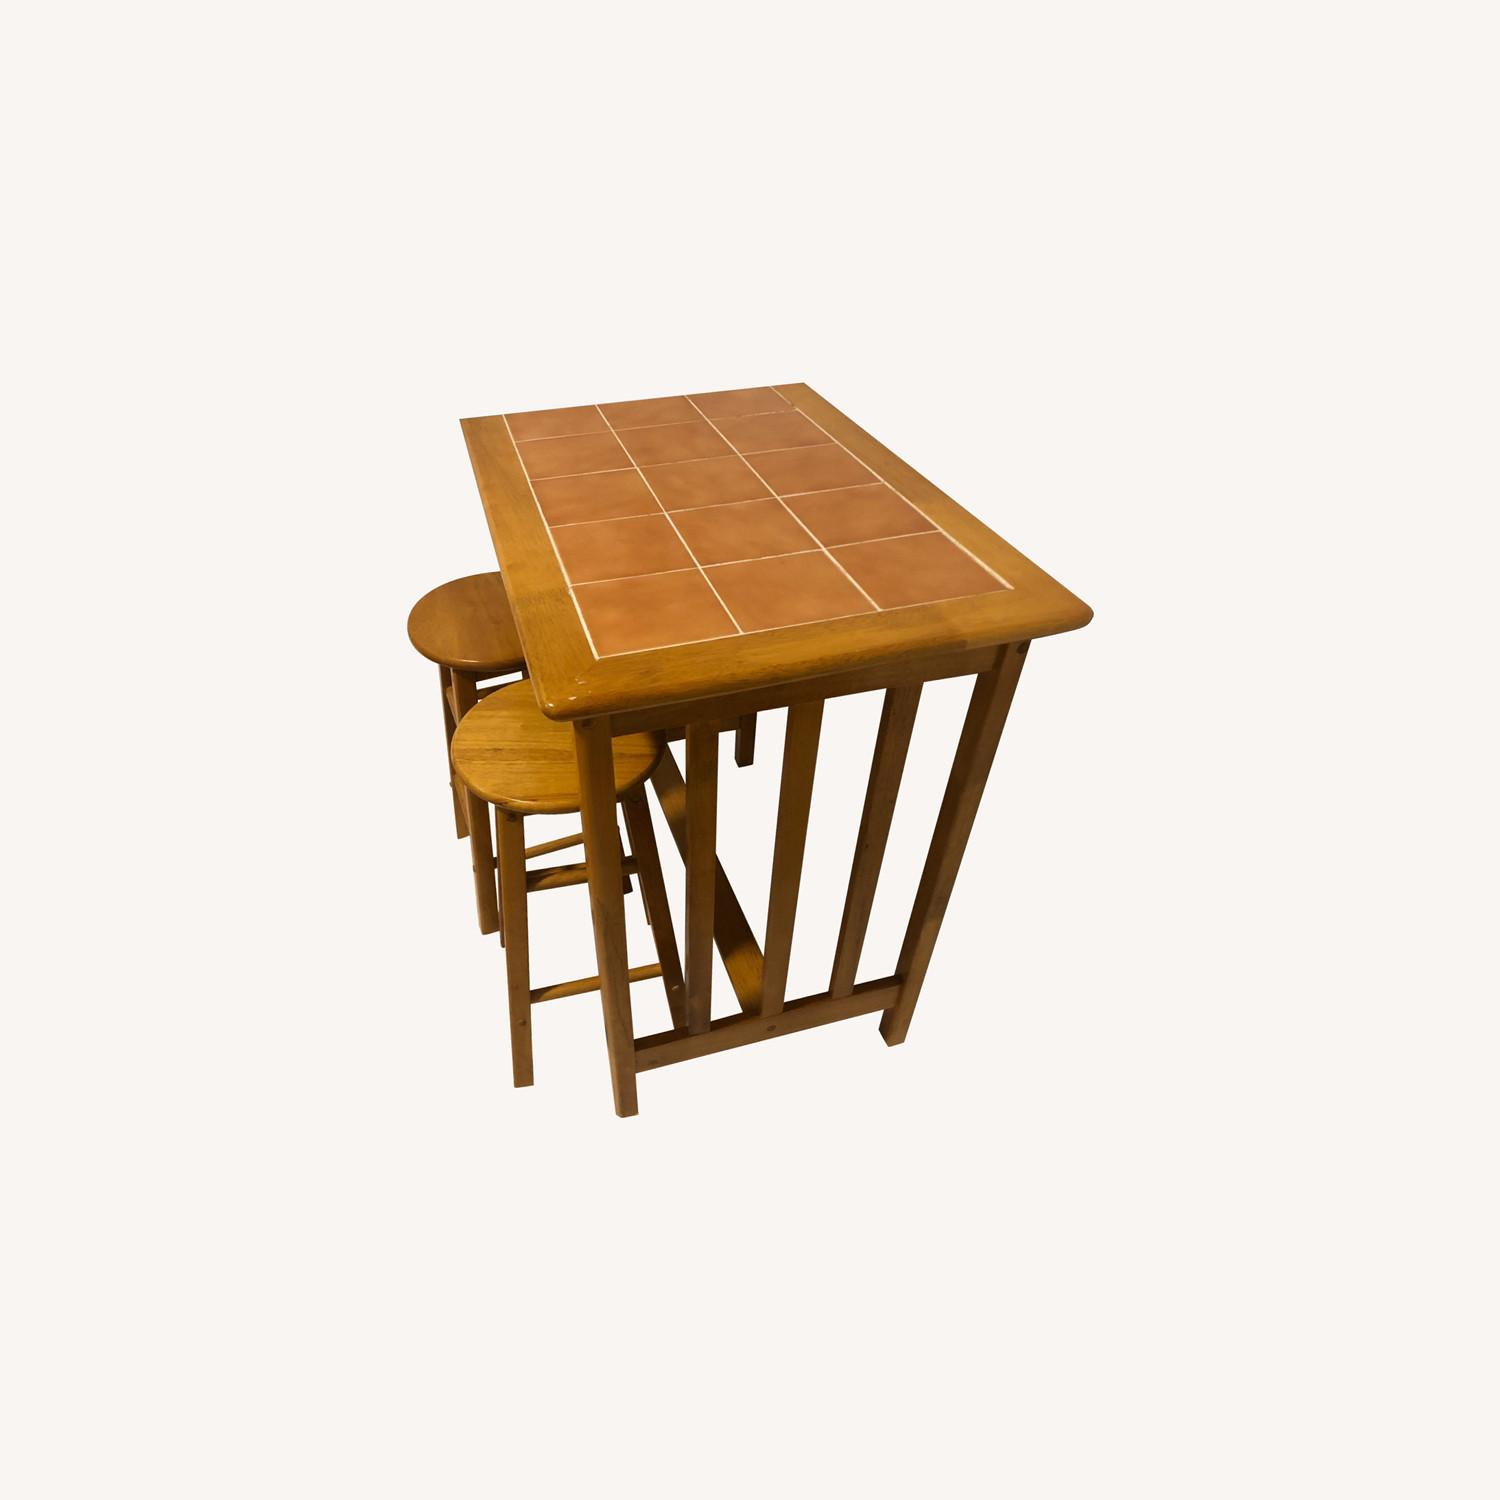 Maple and Tile Bar with Barstools - image-0